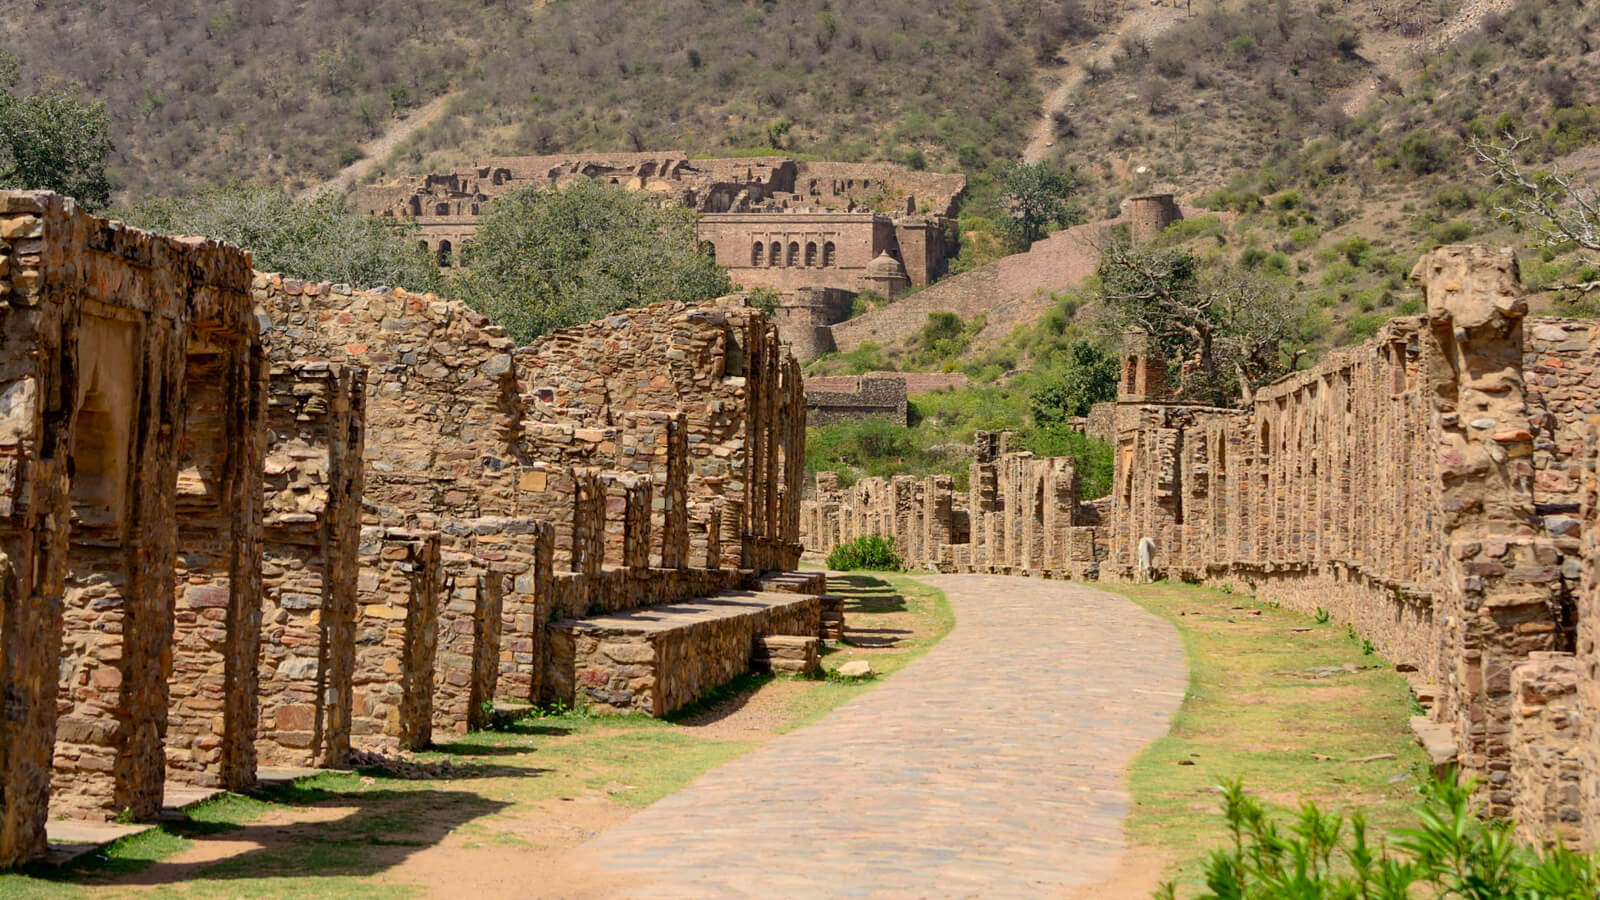 The haunted Bhangarh Fort in Rajasthan, India is not far from Jaipur